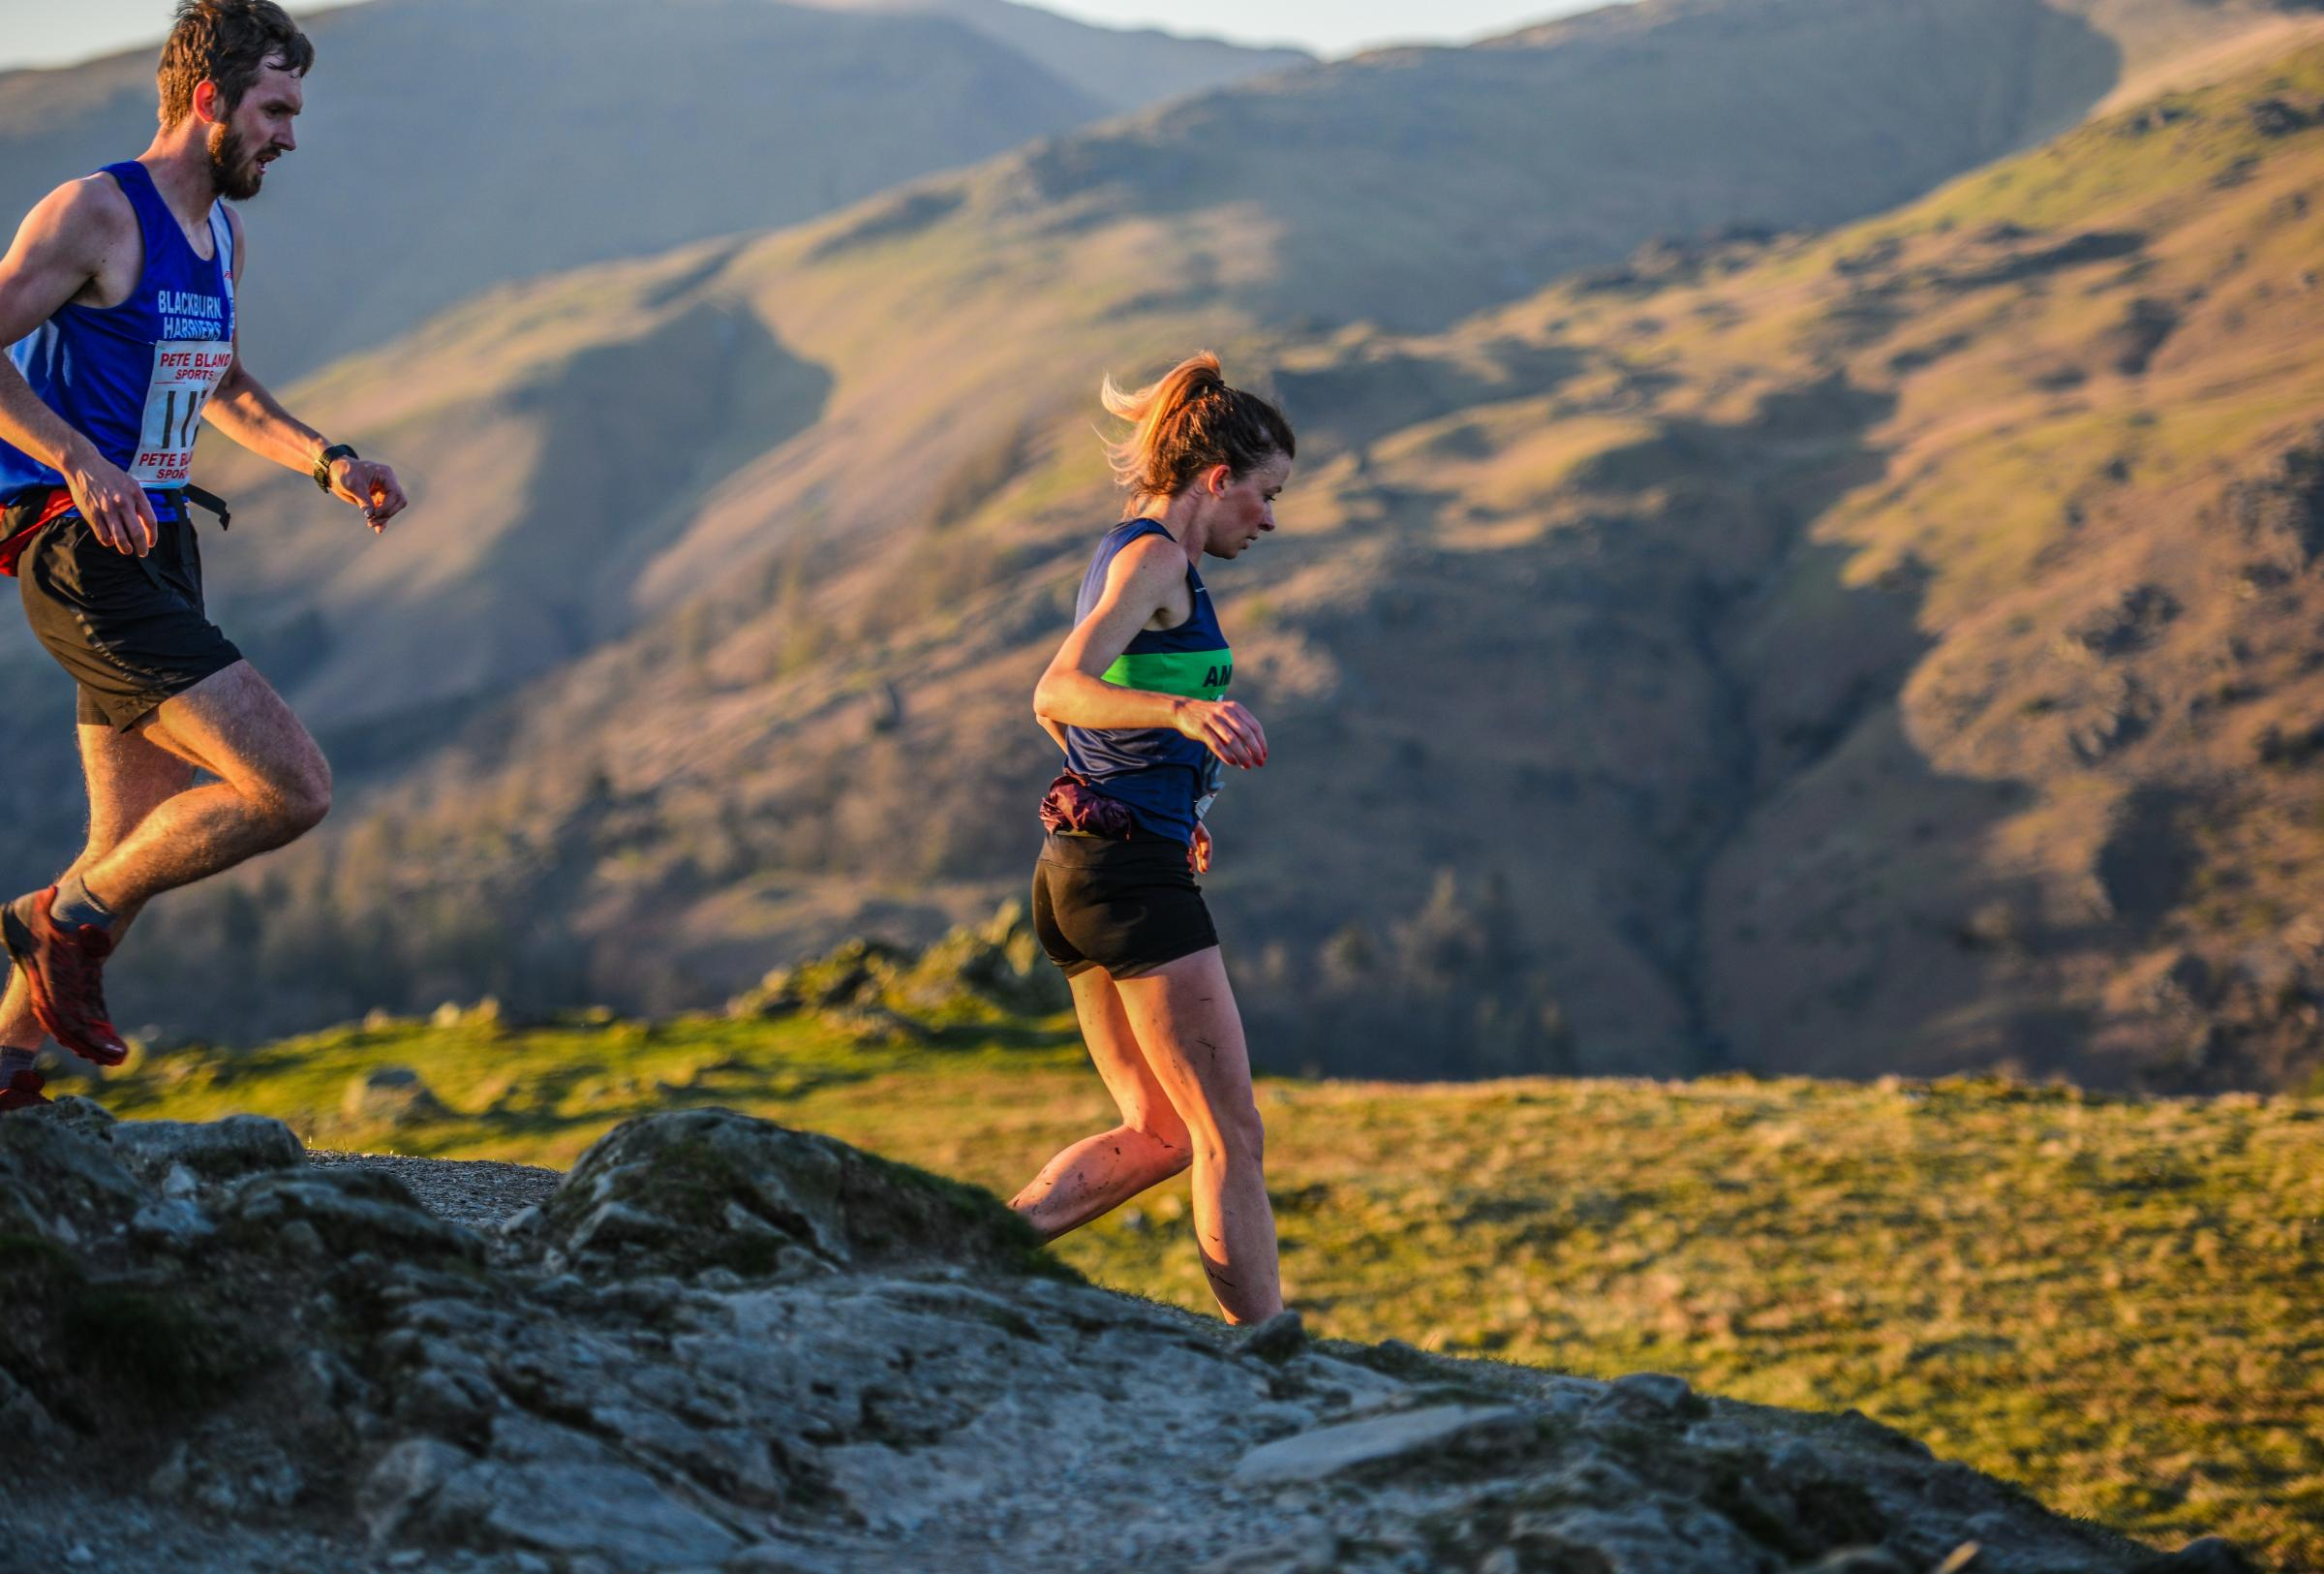 Sarah McCormack winning Loughrigg Fell race for a third time in a row. Photo: Stephen Wilson